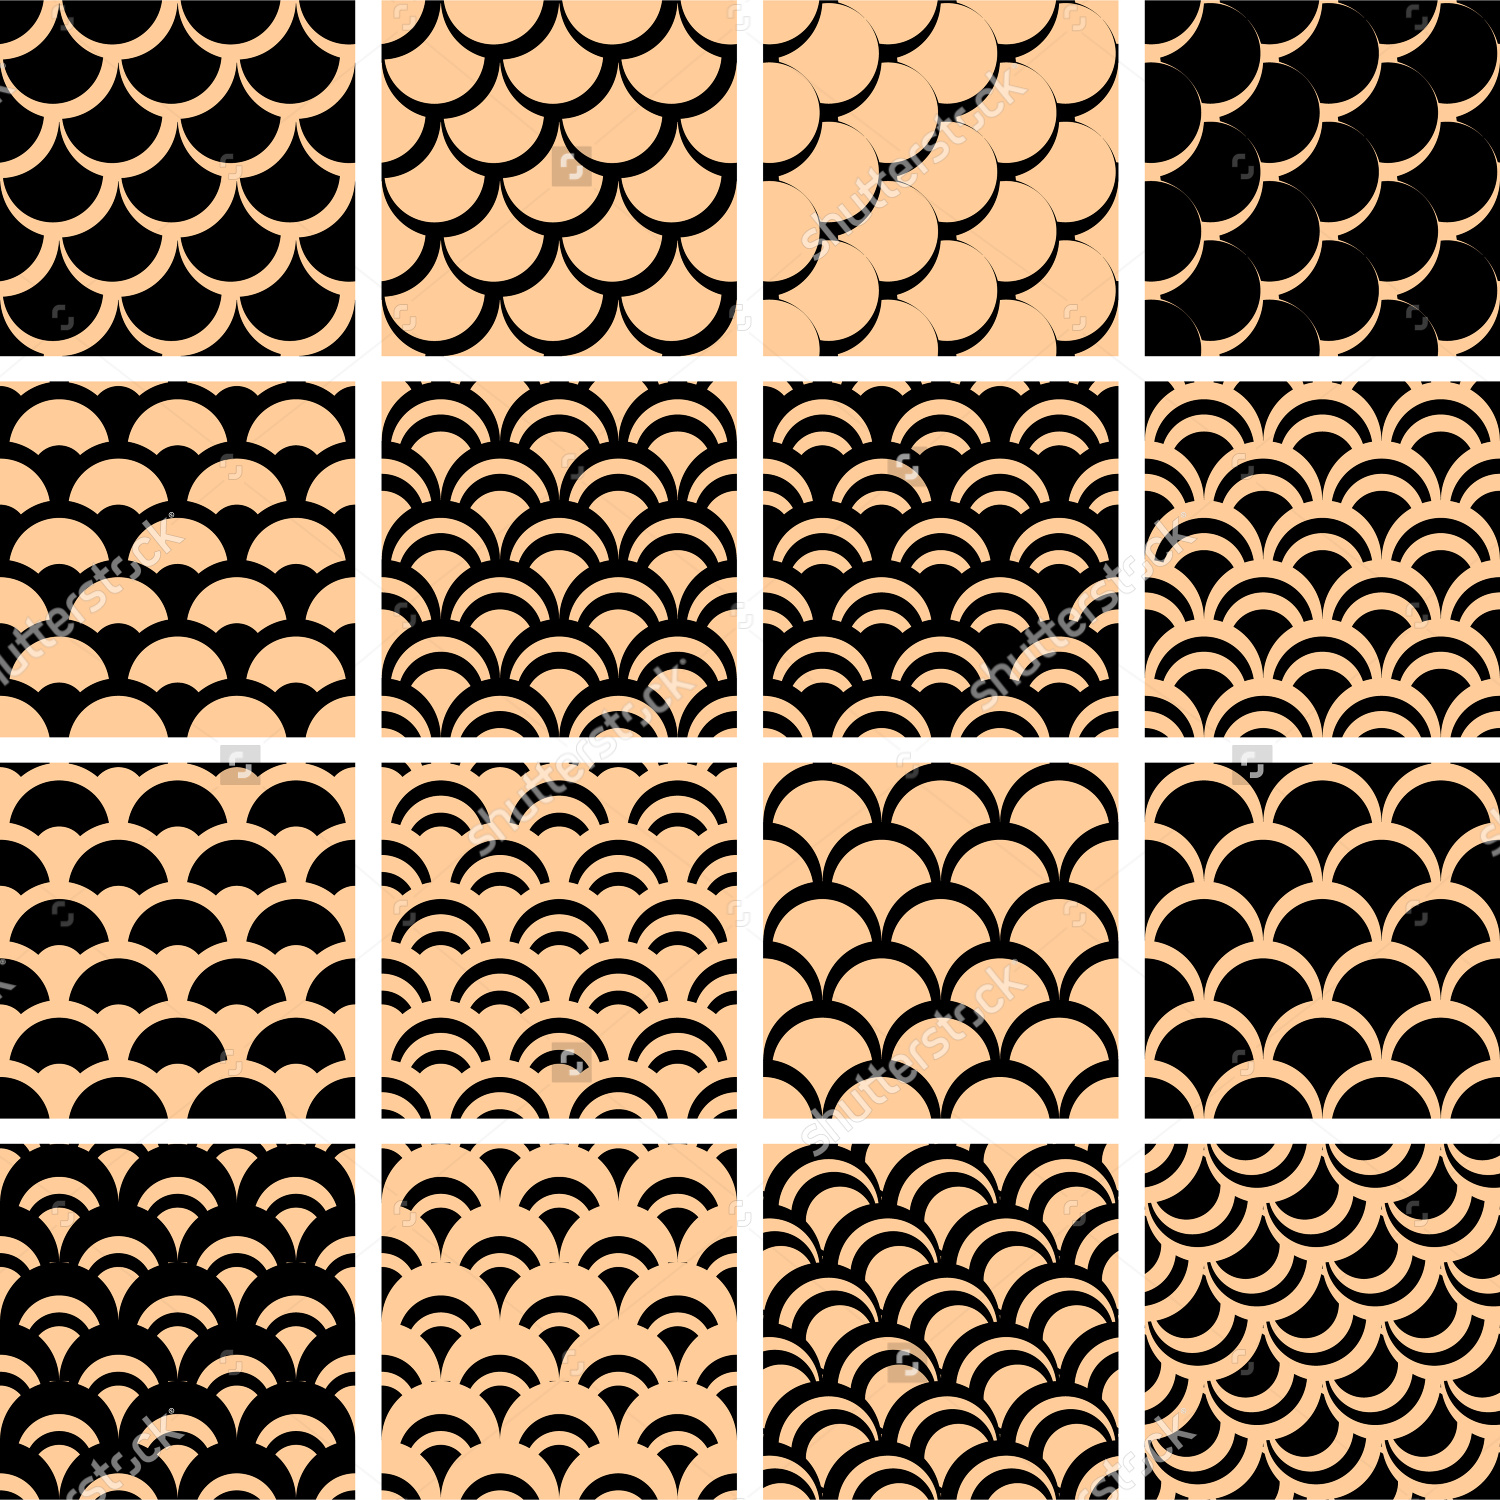 20 fish scale patterns textures backgrounds images